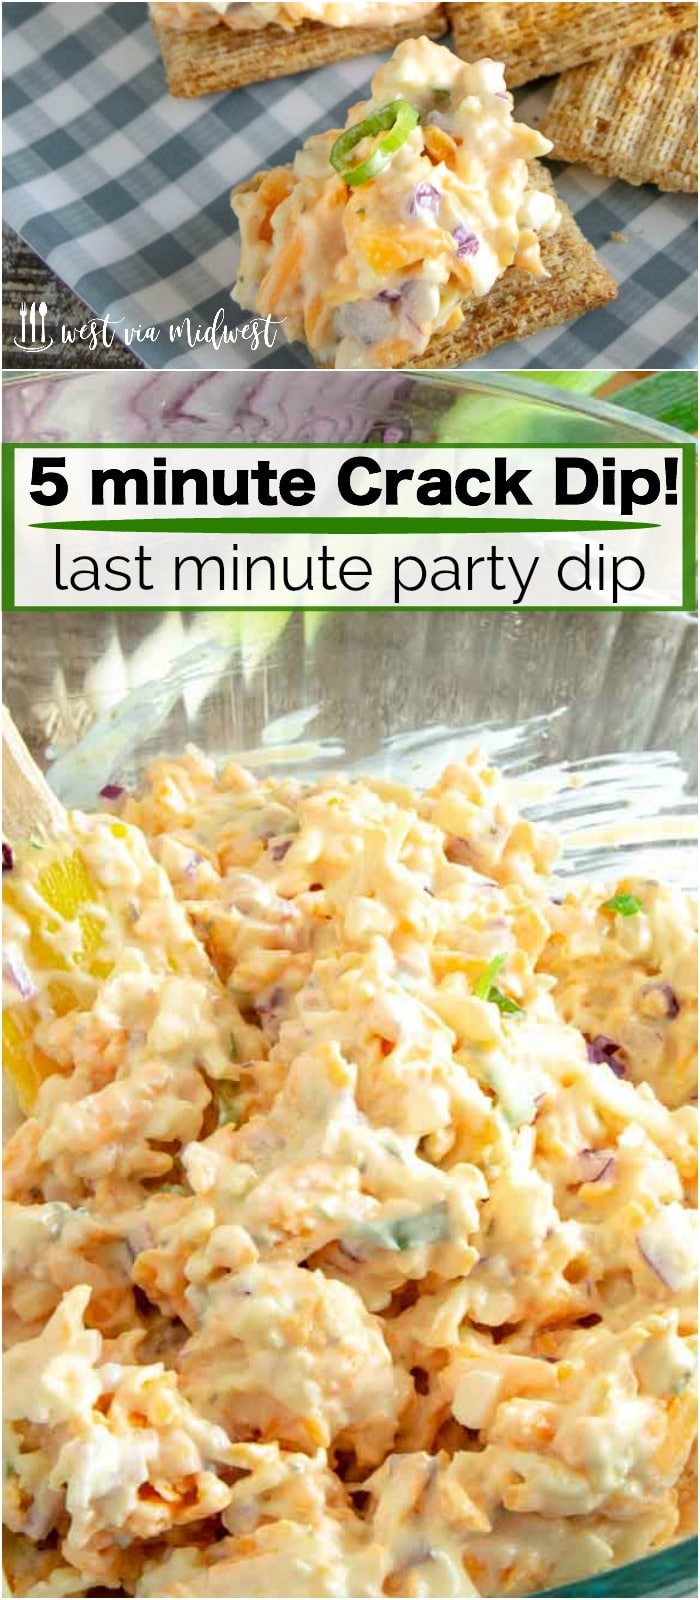 This 5 minute crack dip comes together in 5 minutes and is perfect for serving with crackers.  Ideal for pool side snacking, game day snacking or just to serve with cocktails!